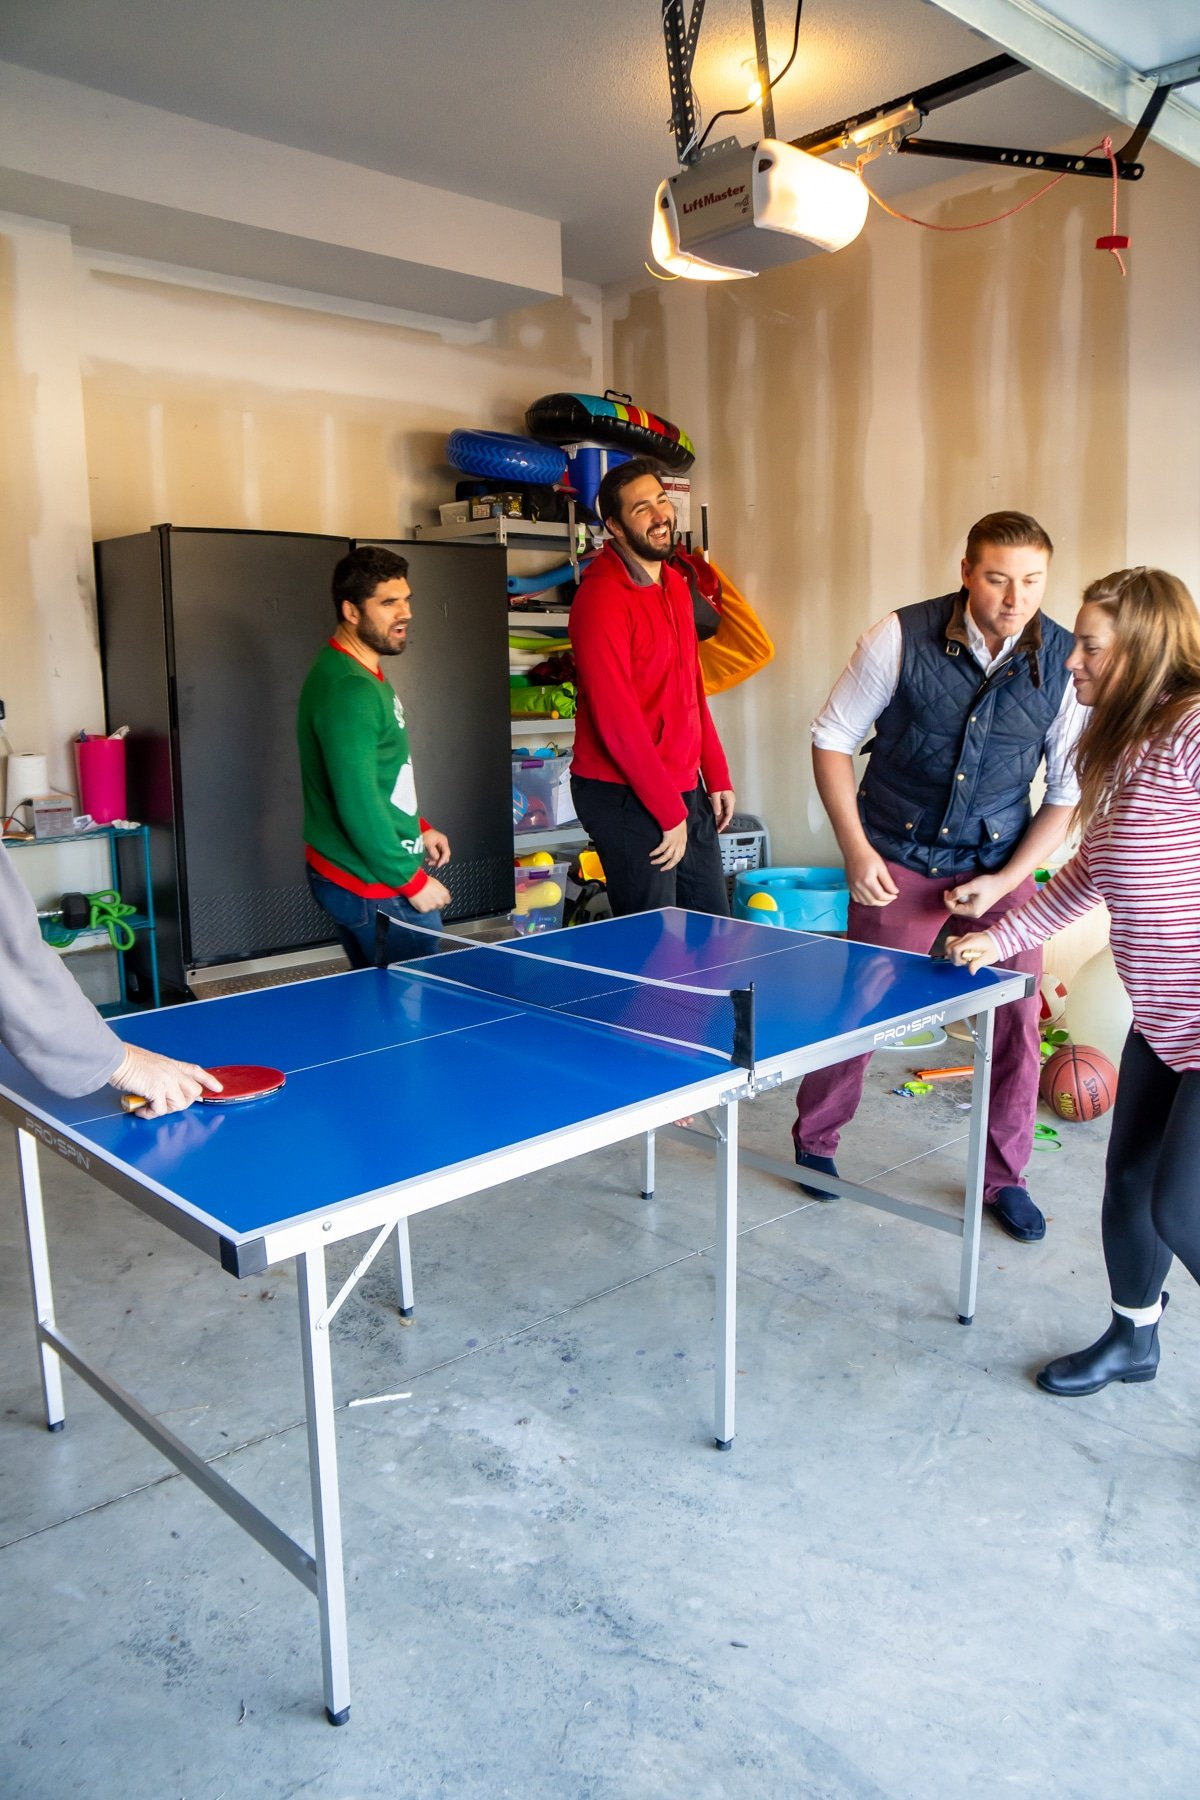 Family playing ping pong games around a ping pong table